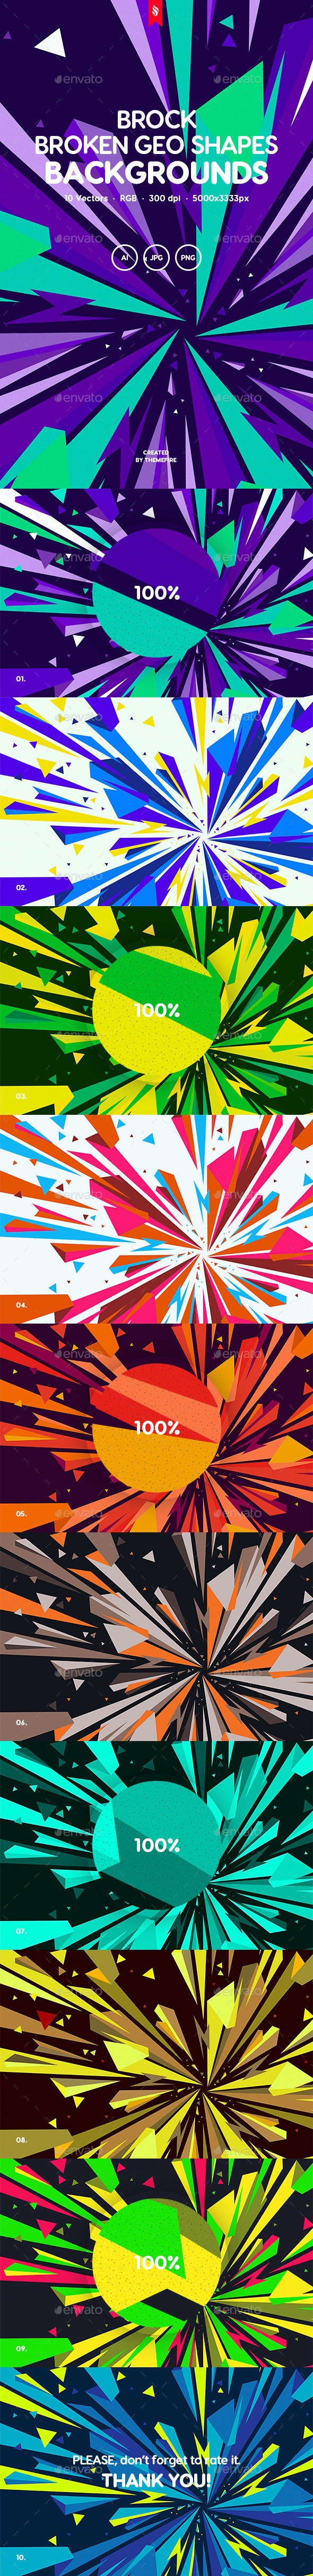 Brock - Broken Geometric Shapes Backgrounds - Abstract Backgrounds